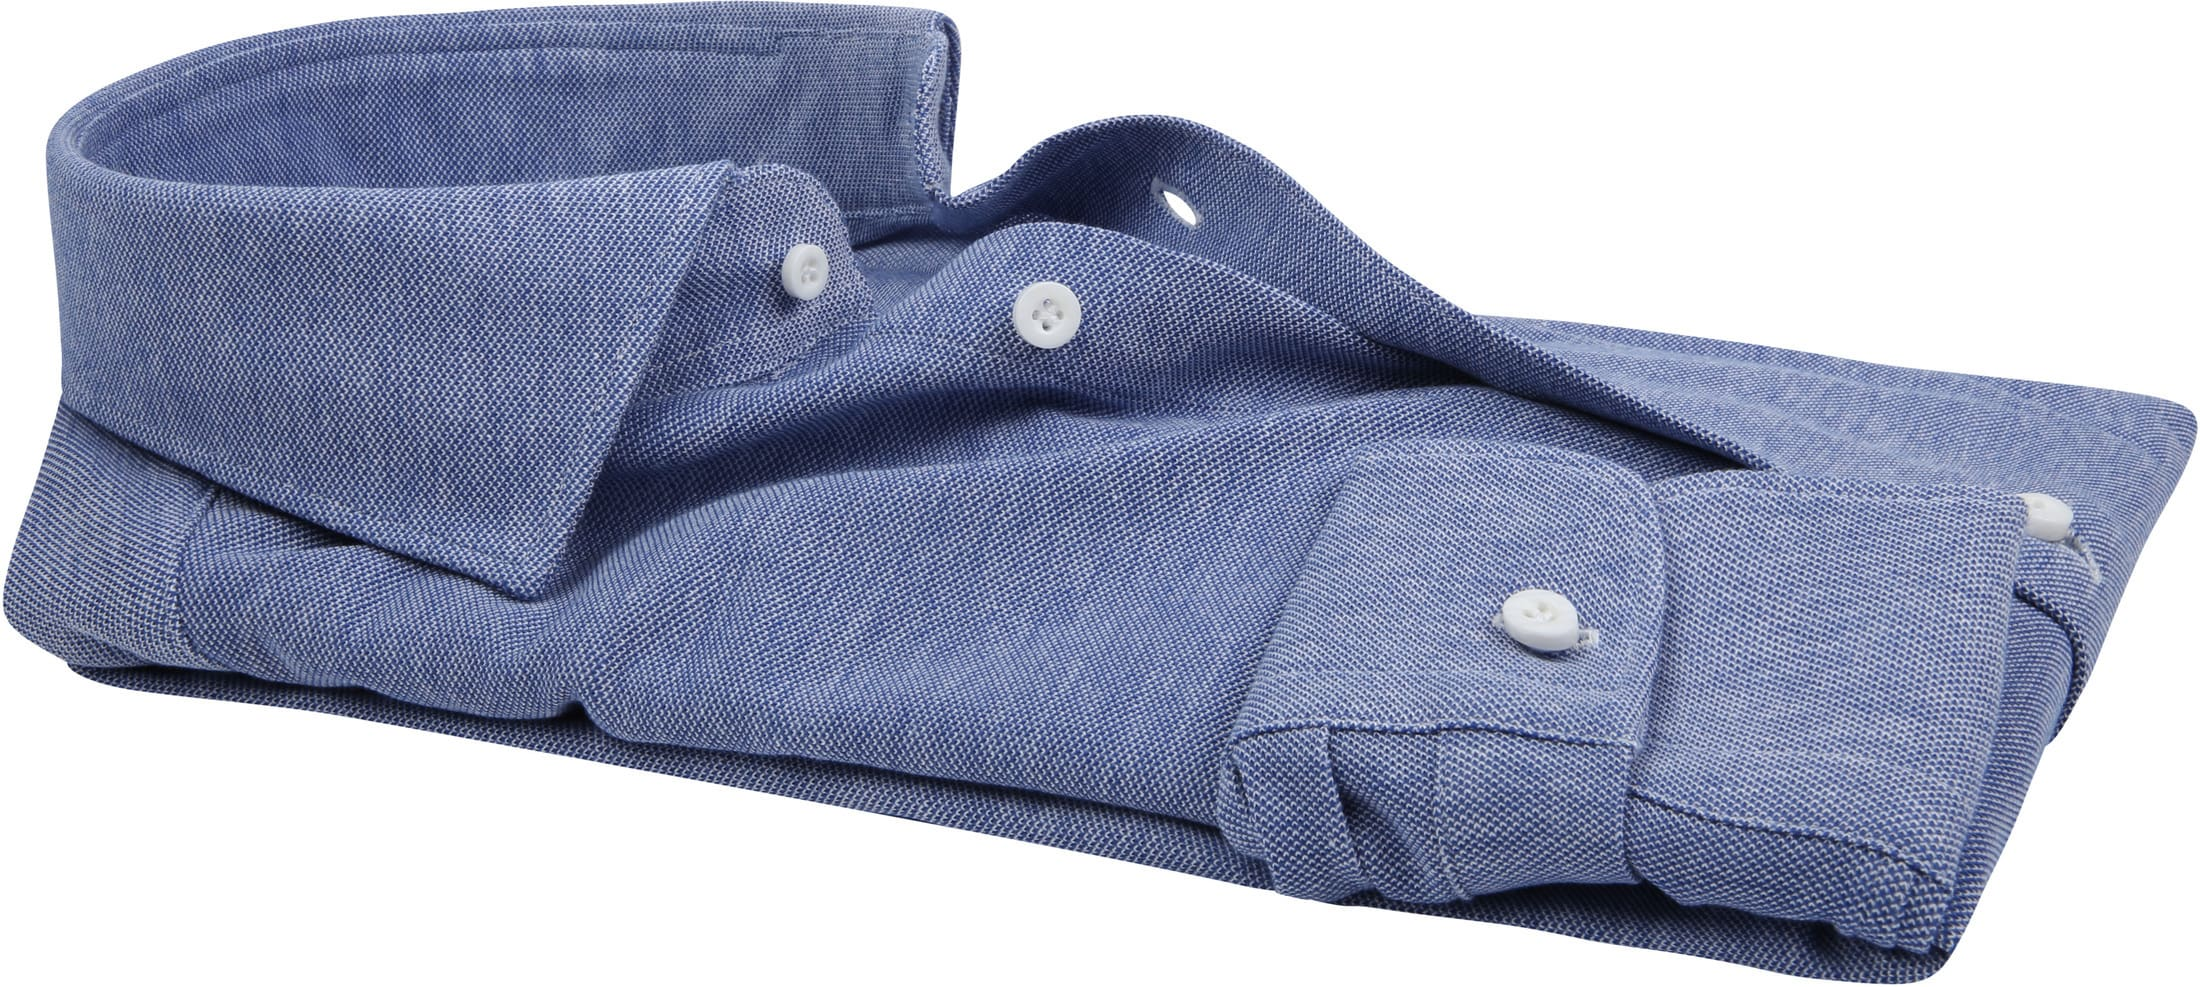 Profuomo Shirt Knitted Mid Blue foto 3